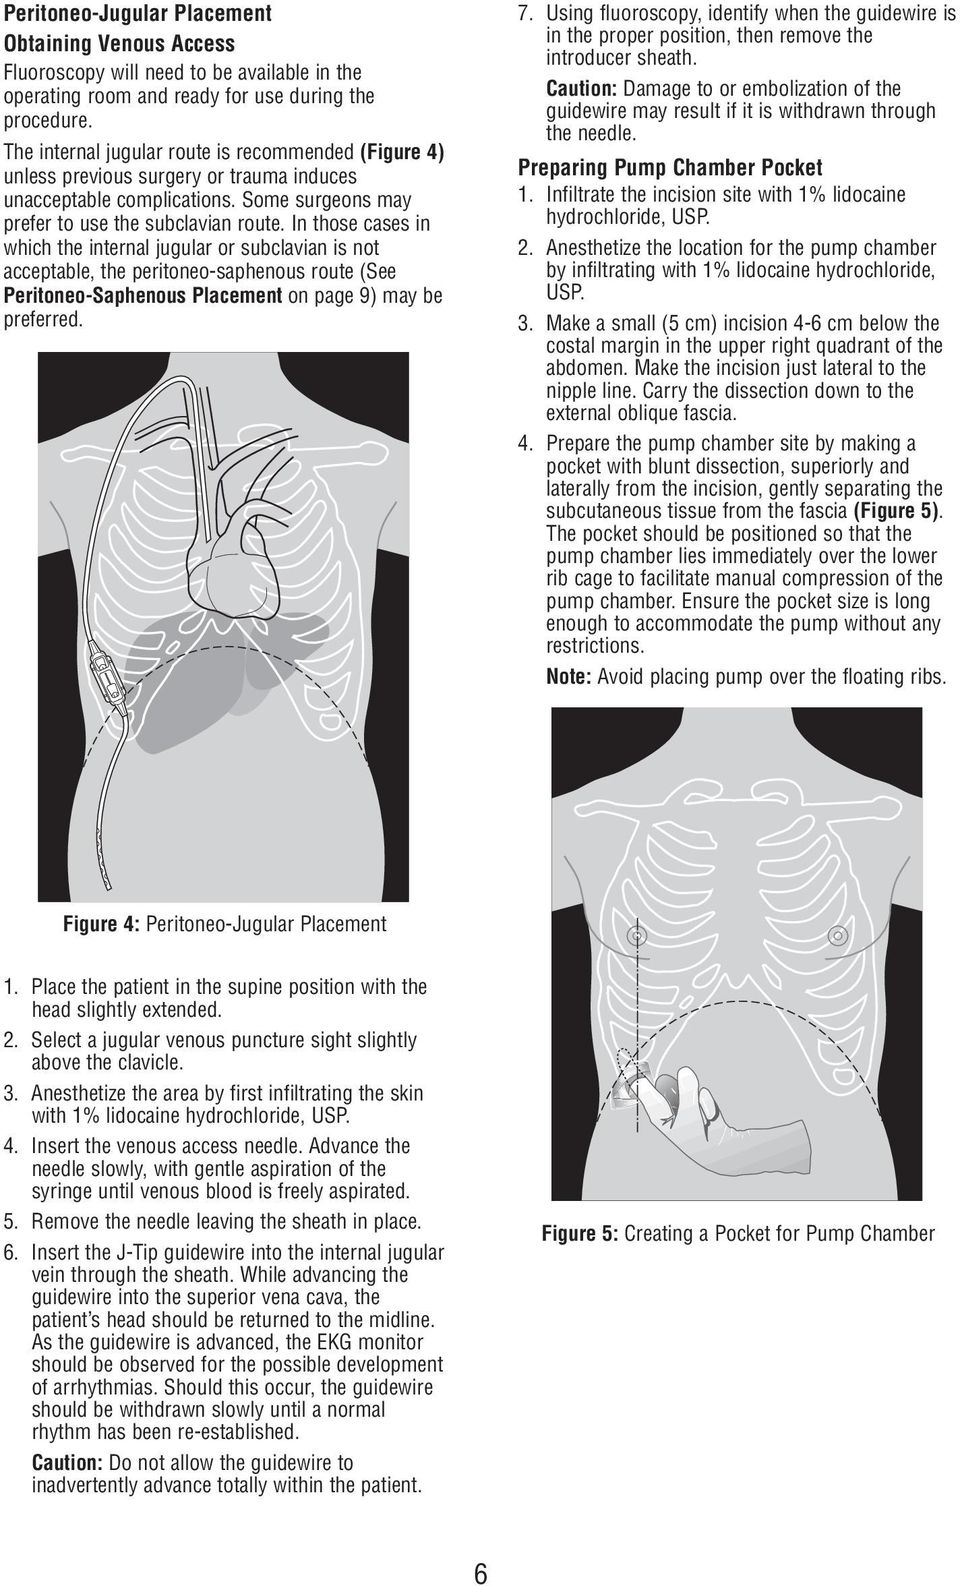 In those cases in which the internal jugular or subclavian is not acceptable, the peritoneo-saphenous route (See Peritoneo-Saphenous Placement on page 9) may be preferred. 7.